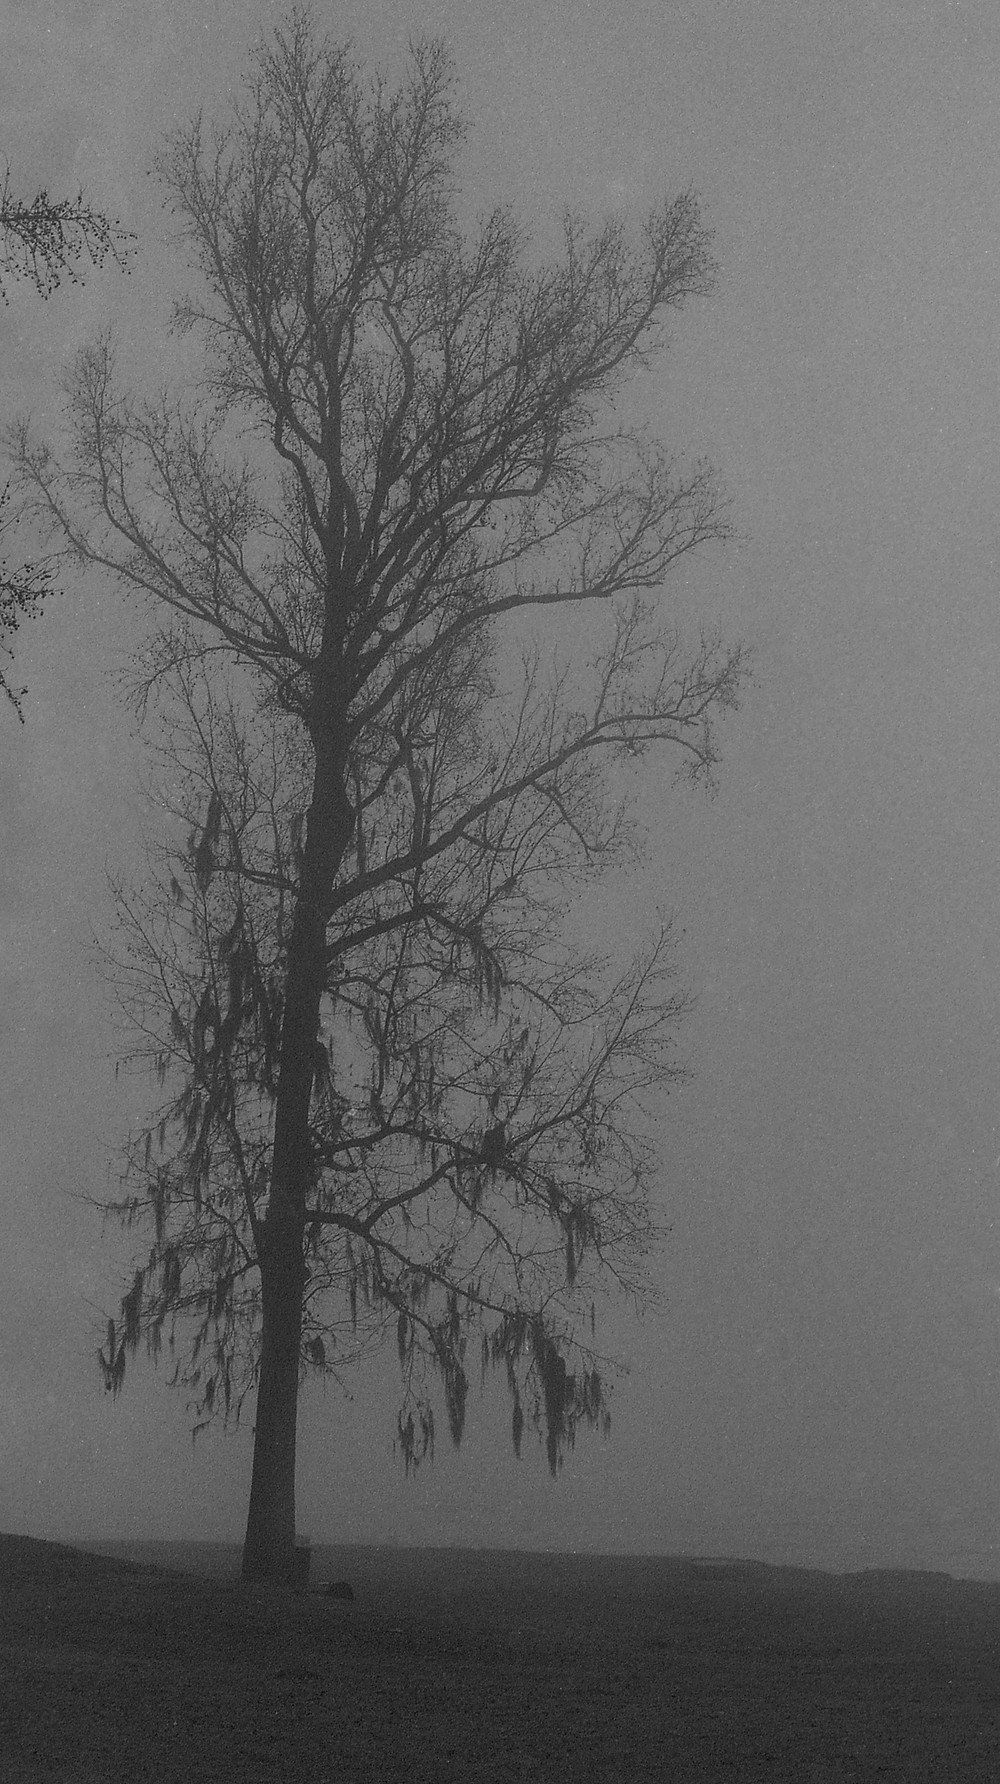 A ghostly sweet gum tree along the Savannah River